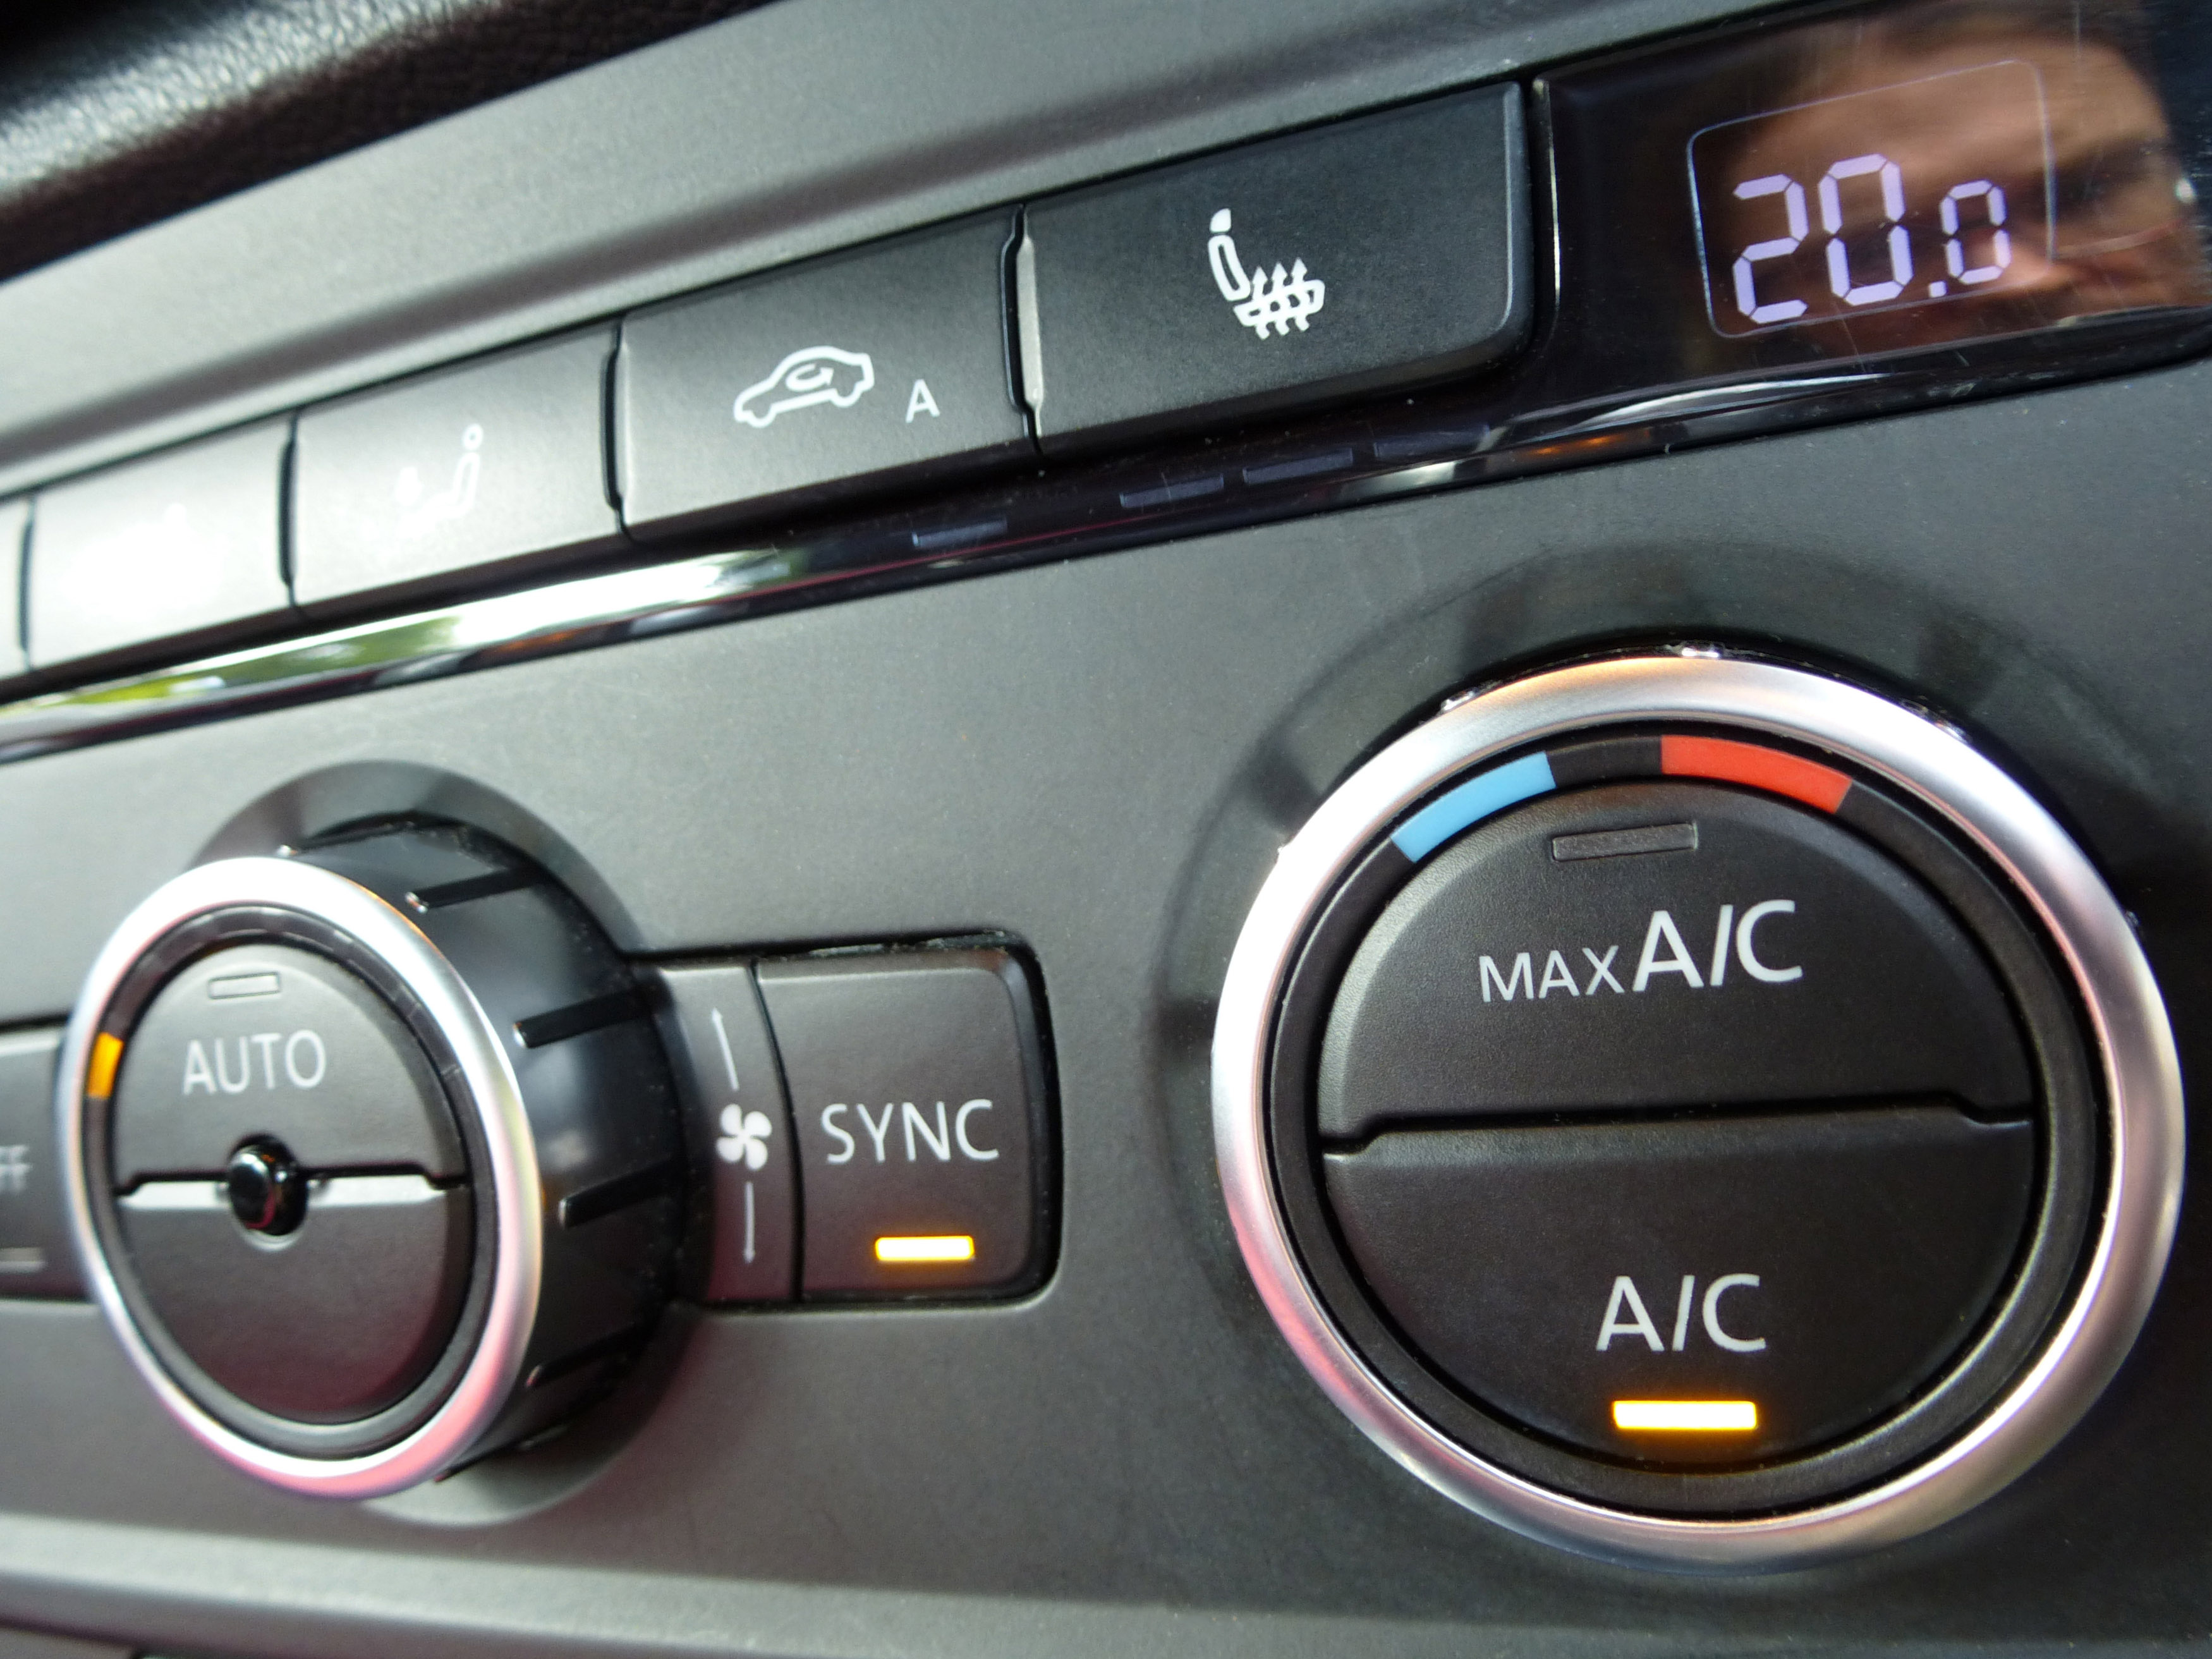 Free Stock Photo 16337 Air conditioner controls on a car dashboard